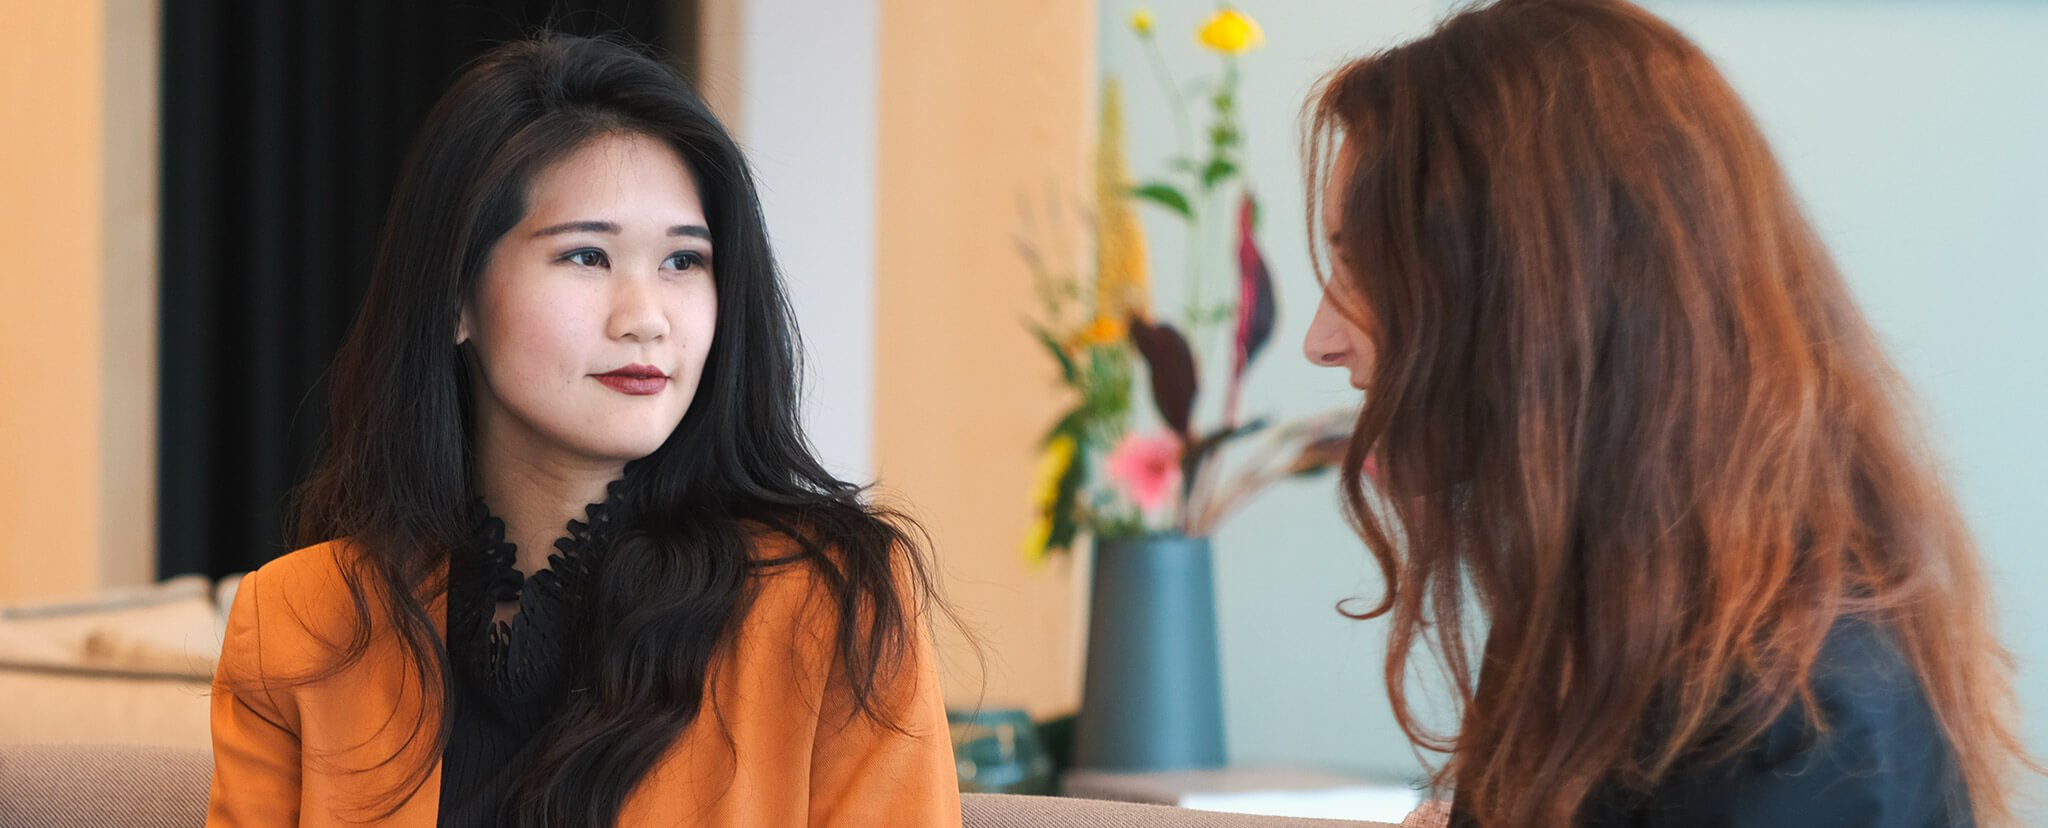 o9 employees: Joanne Lin, innovation manager, talking to Alexia Marcazzan, Global Innovation Strategist